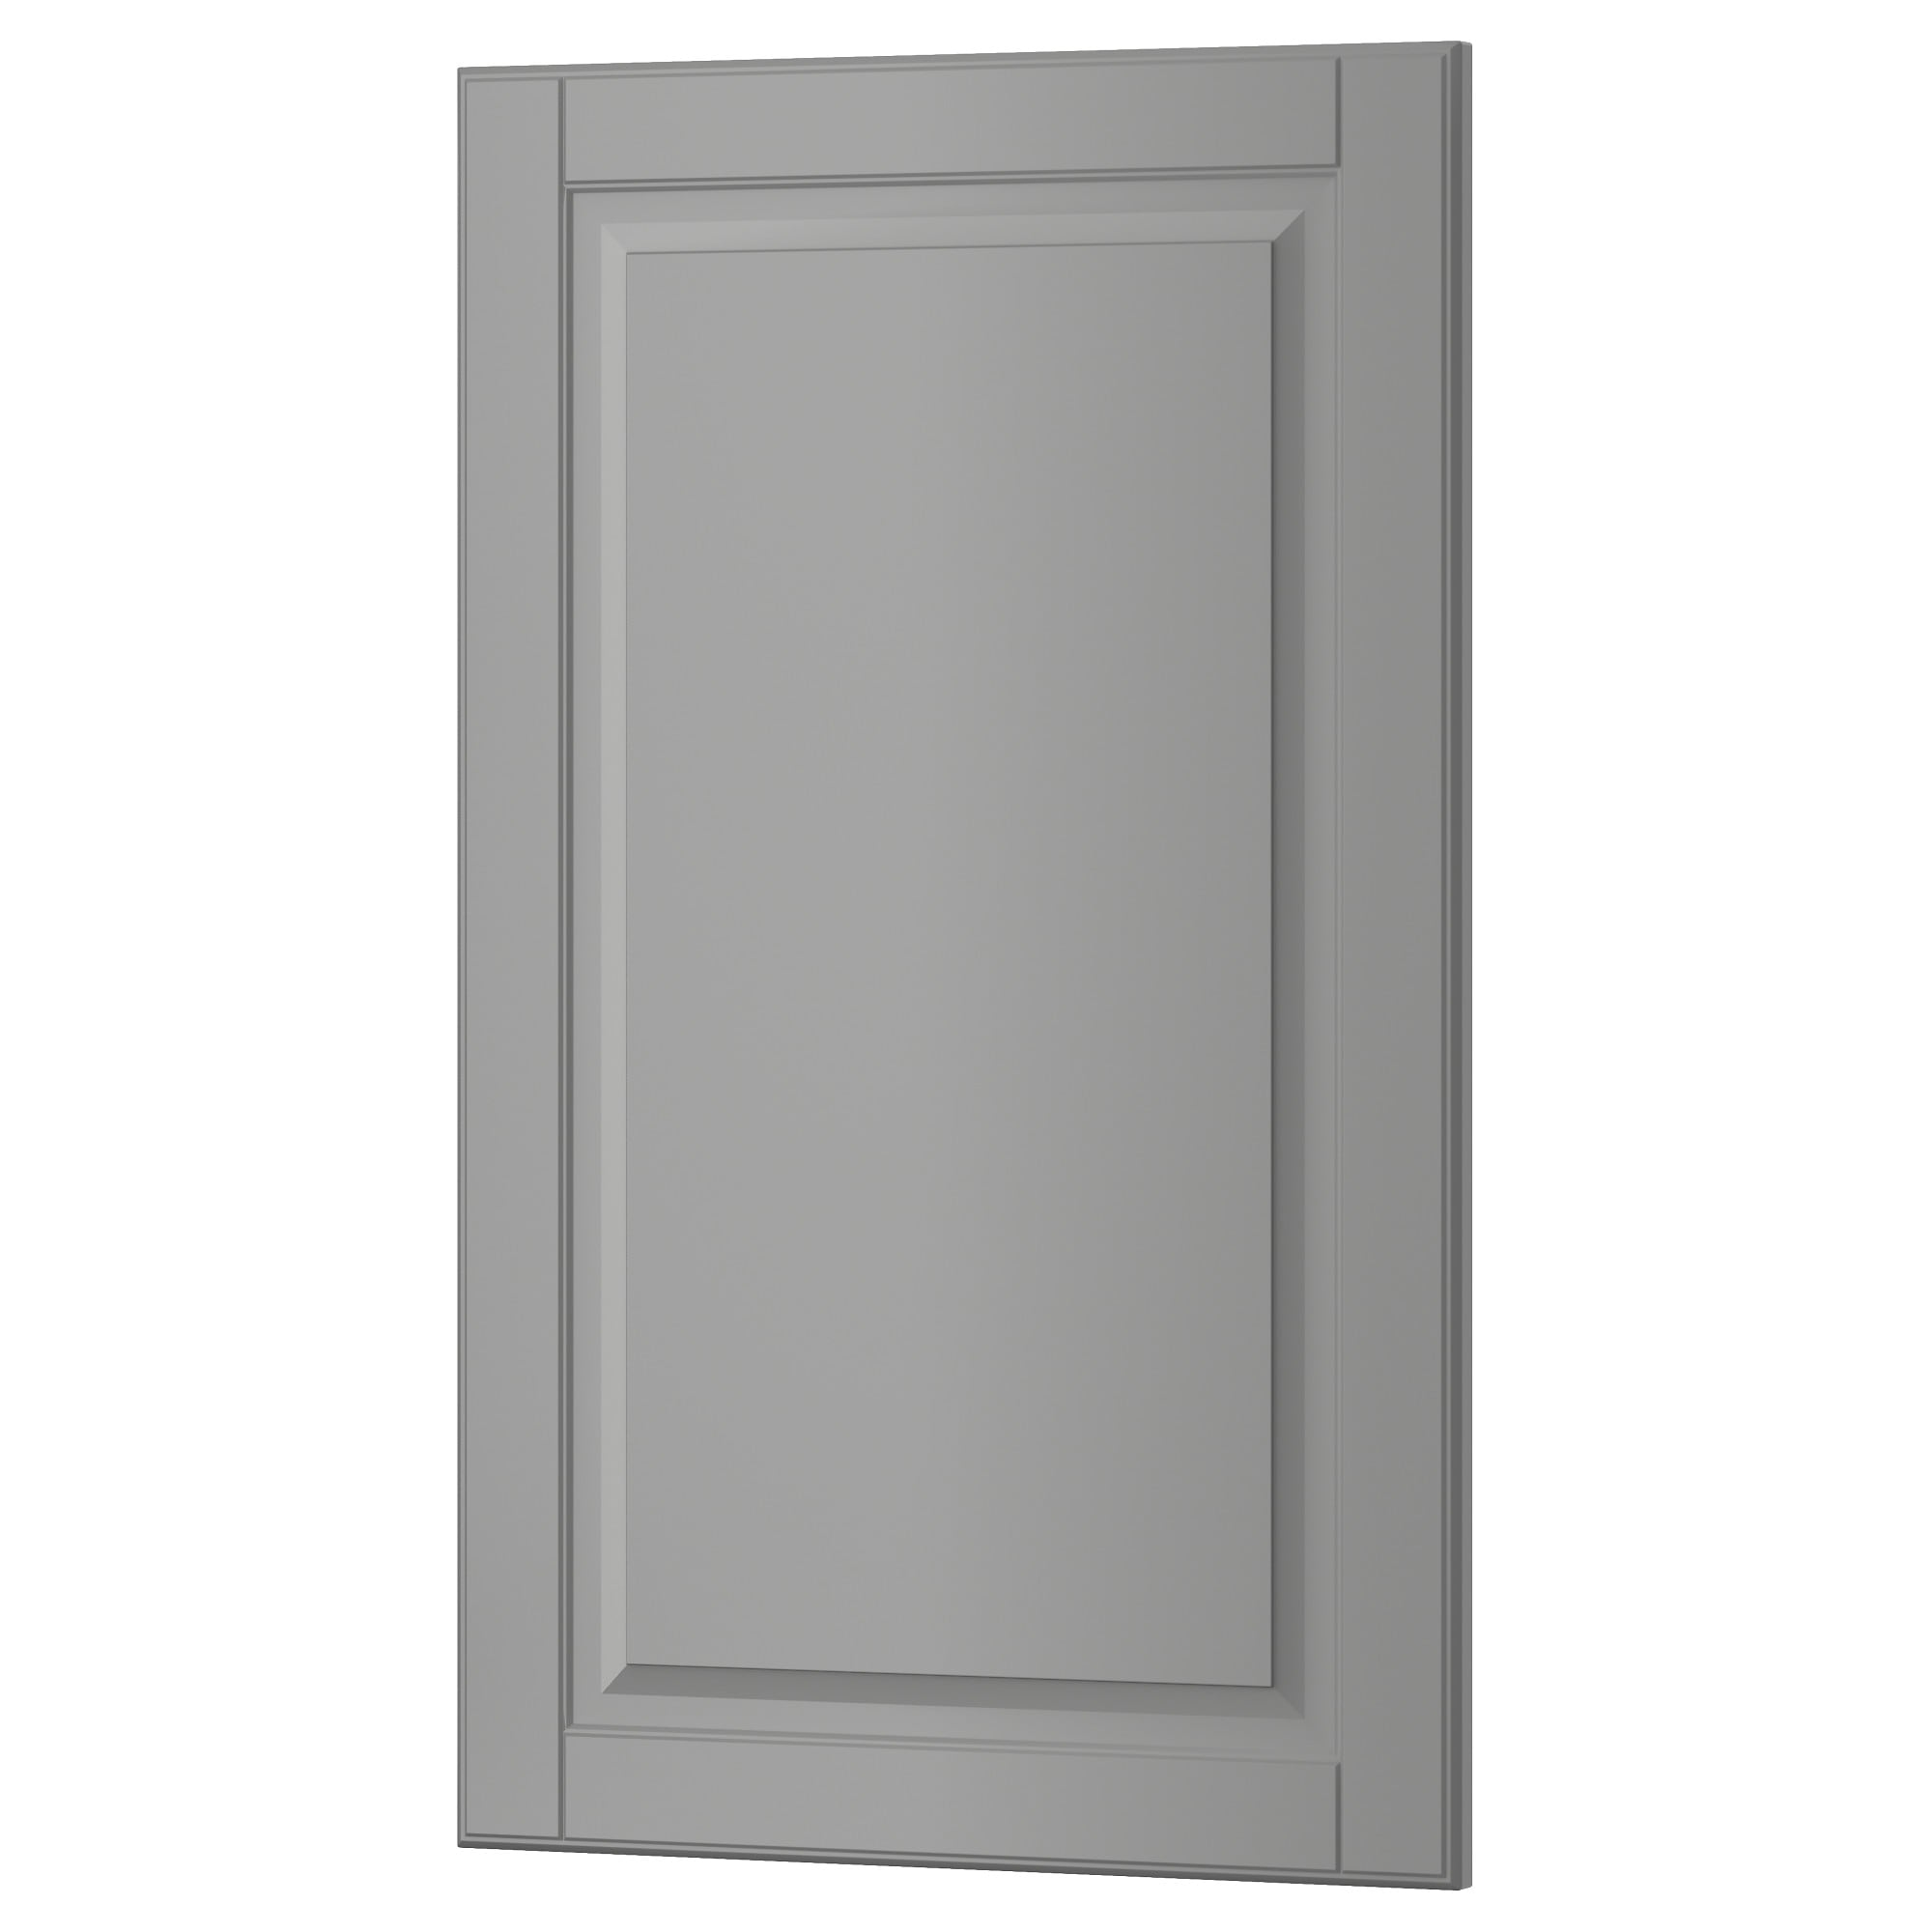 white cabinet door with glass. White Cabinet Door. Door H With Glass